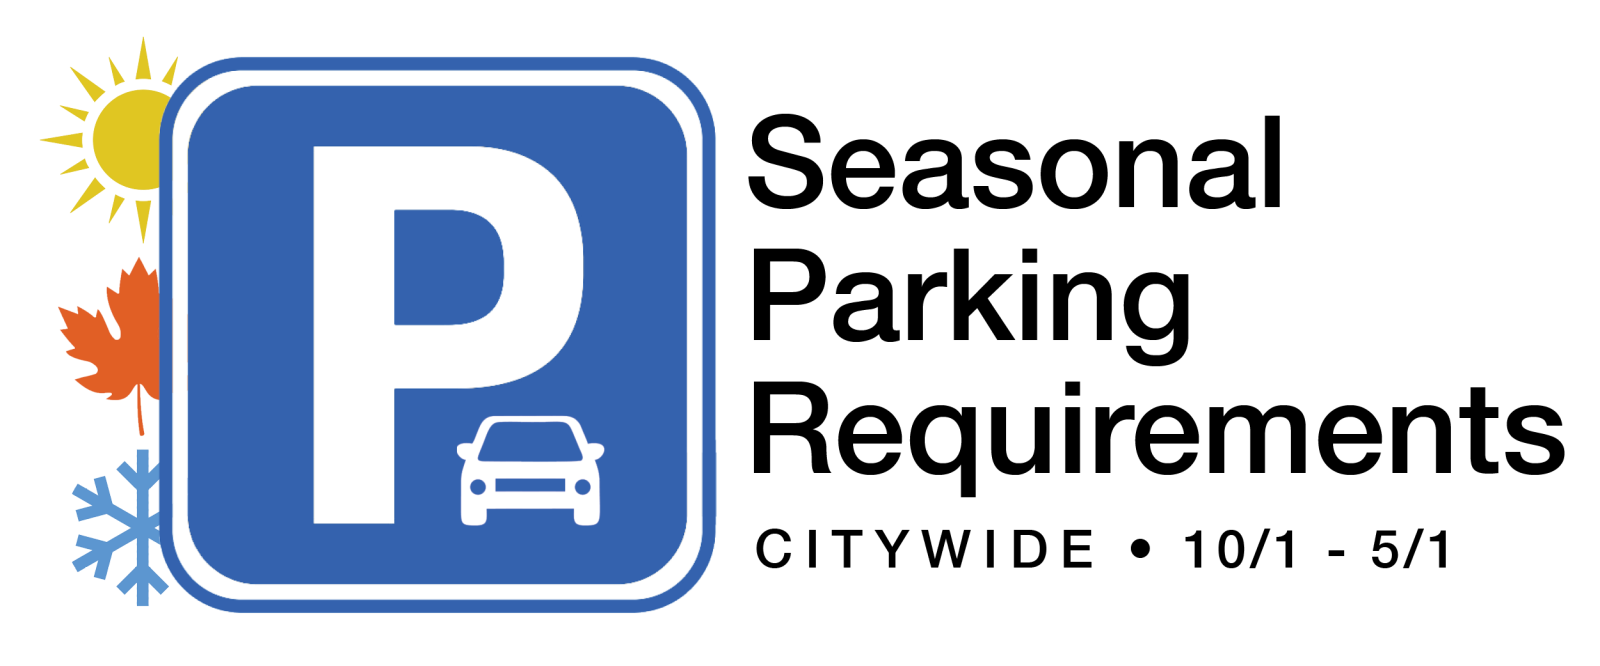 Seasonal Parking Requirements_icon_small